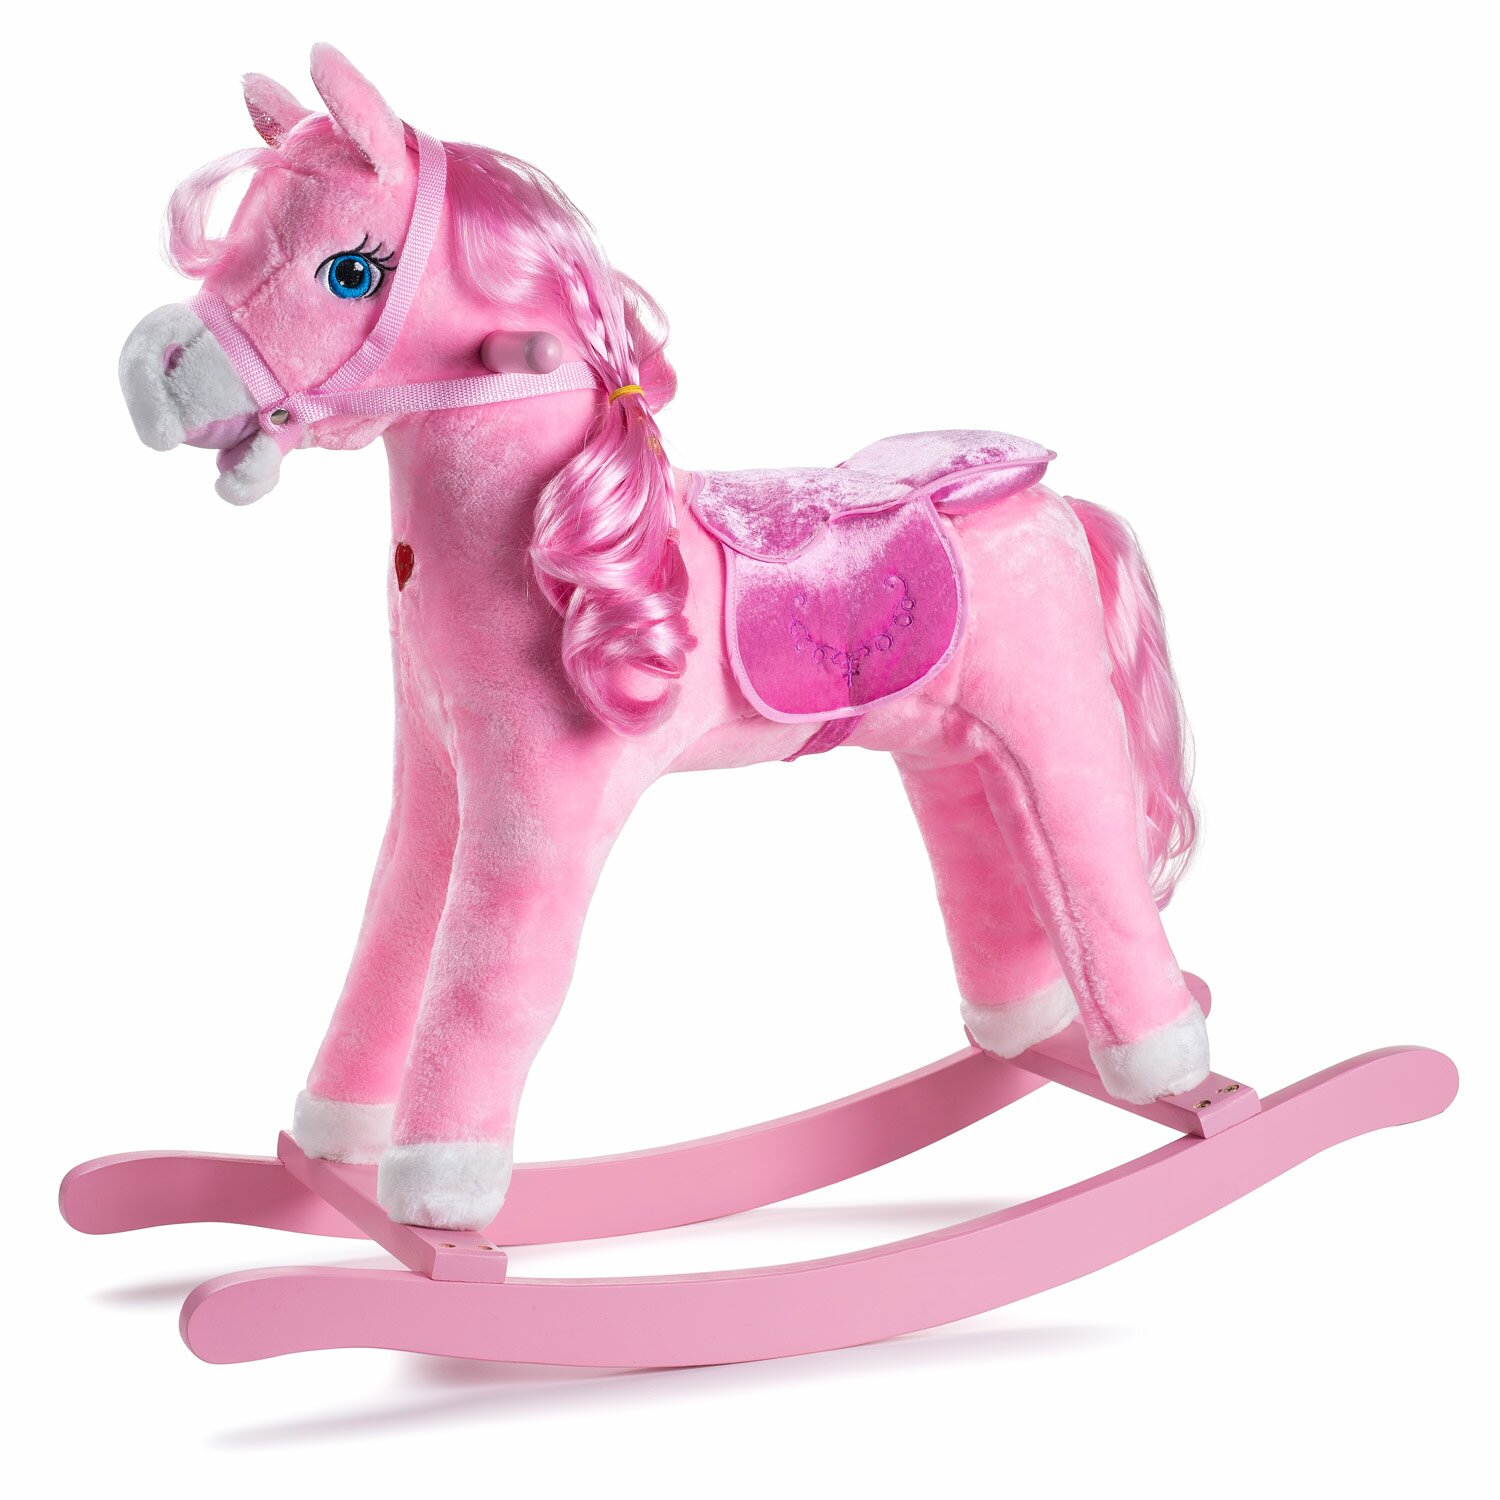 Shop bobby 39 s joon princess pony rocking horse wayfair - Princesse poney ...